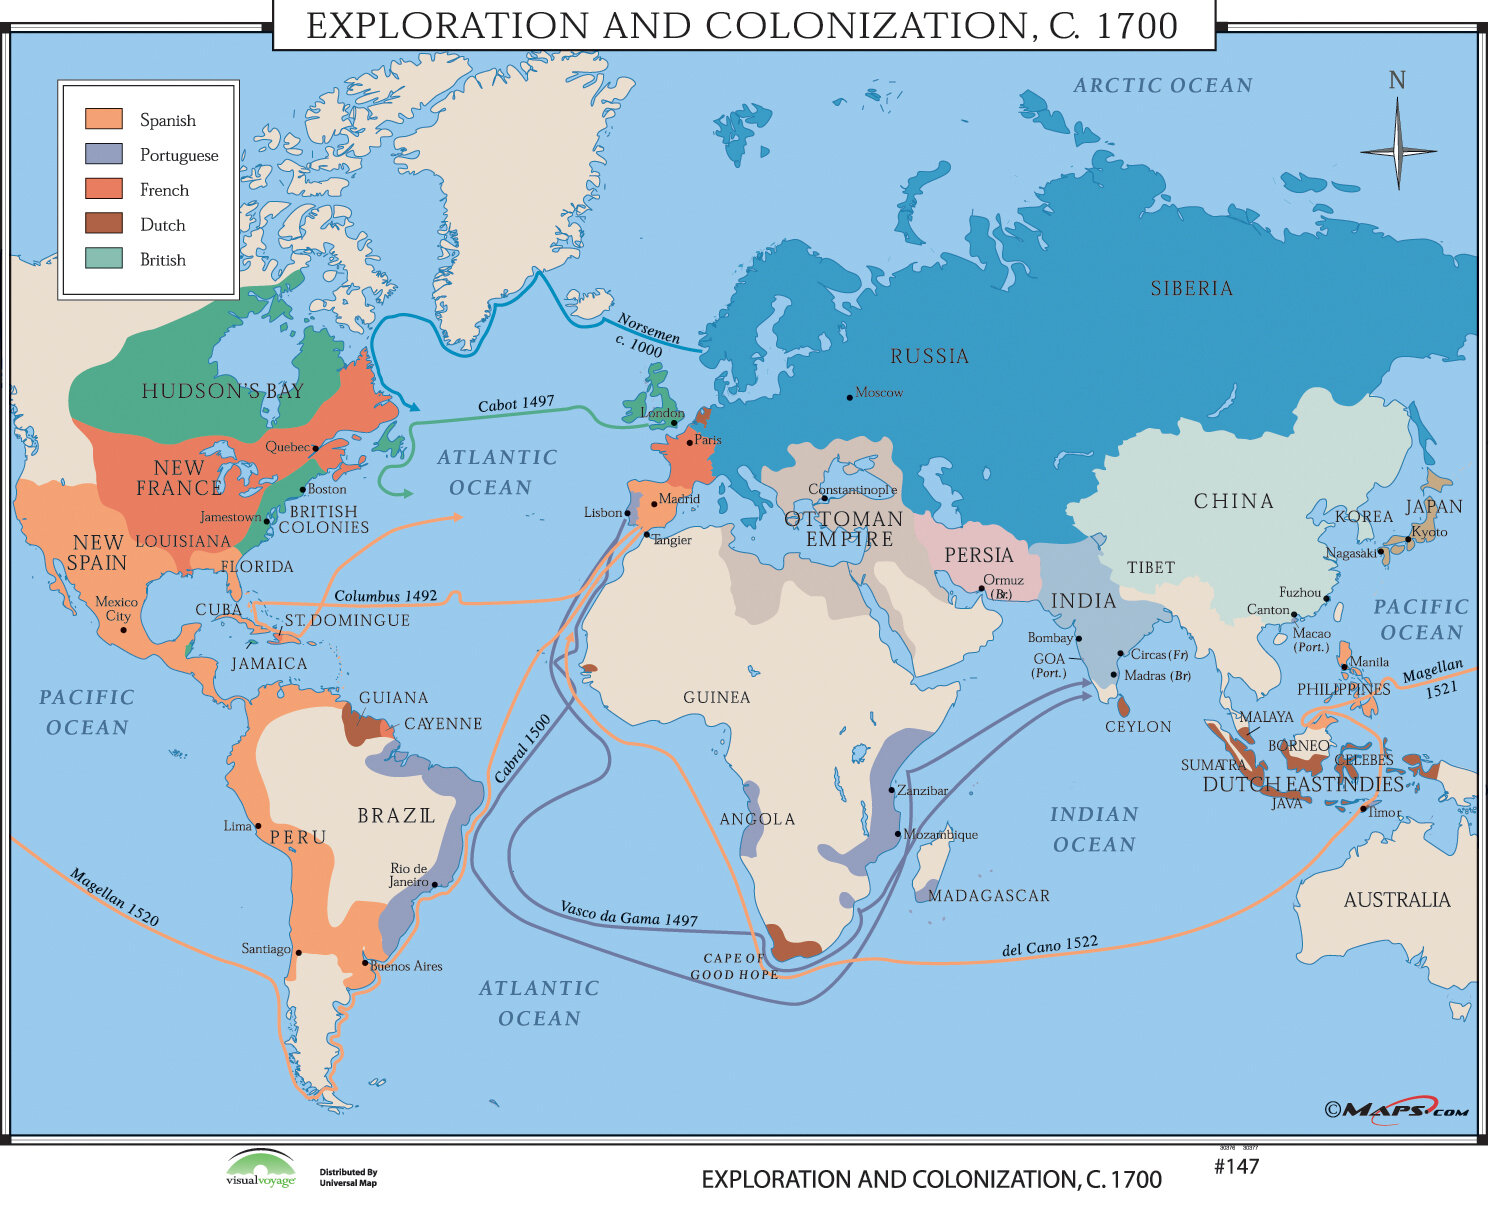 World History Wall Maps - Exploration & Colonization 1700